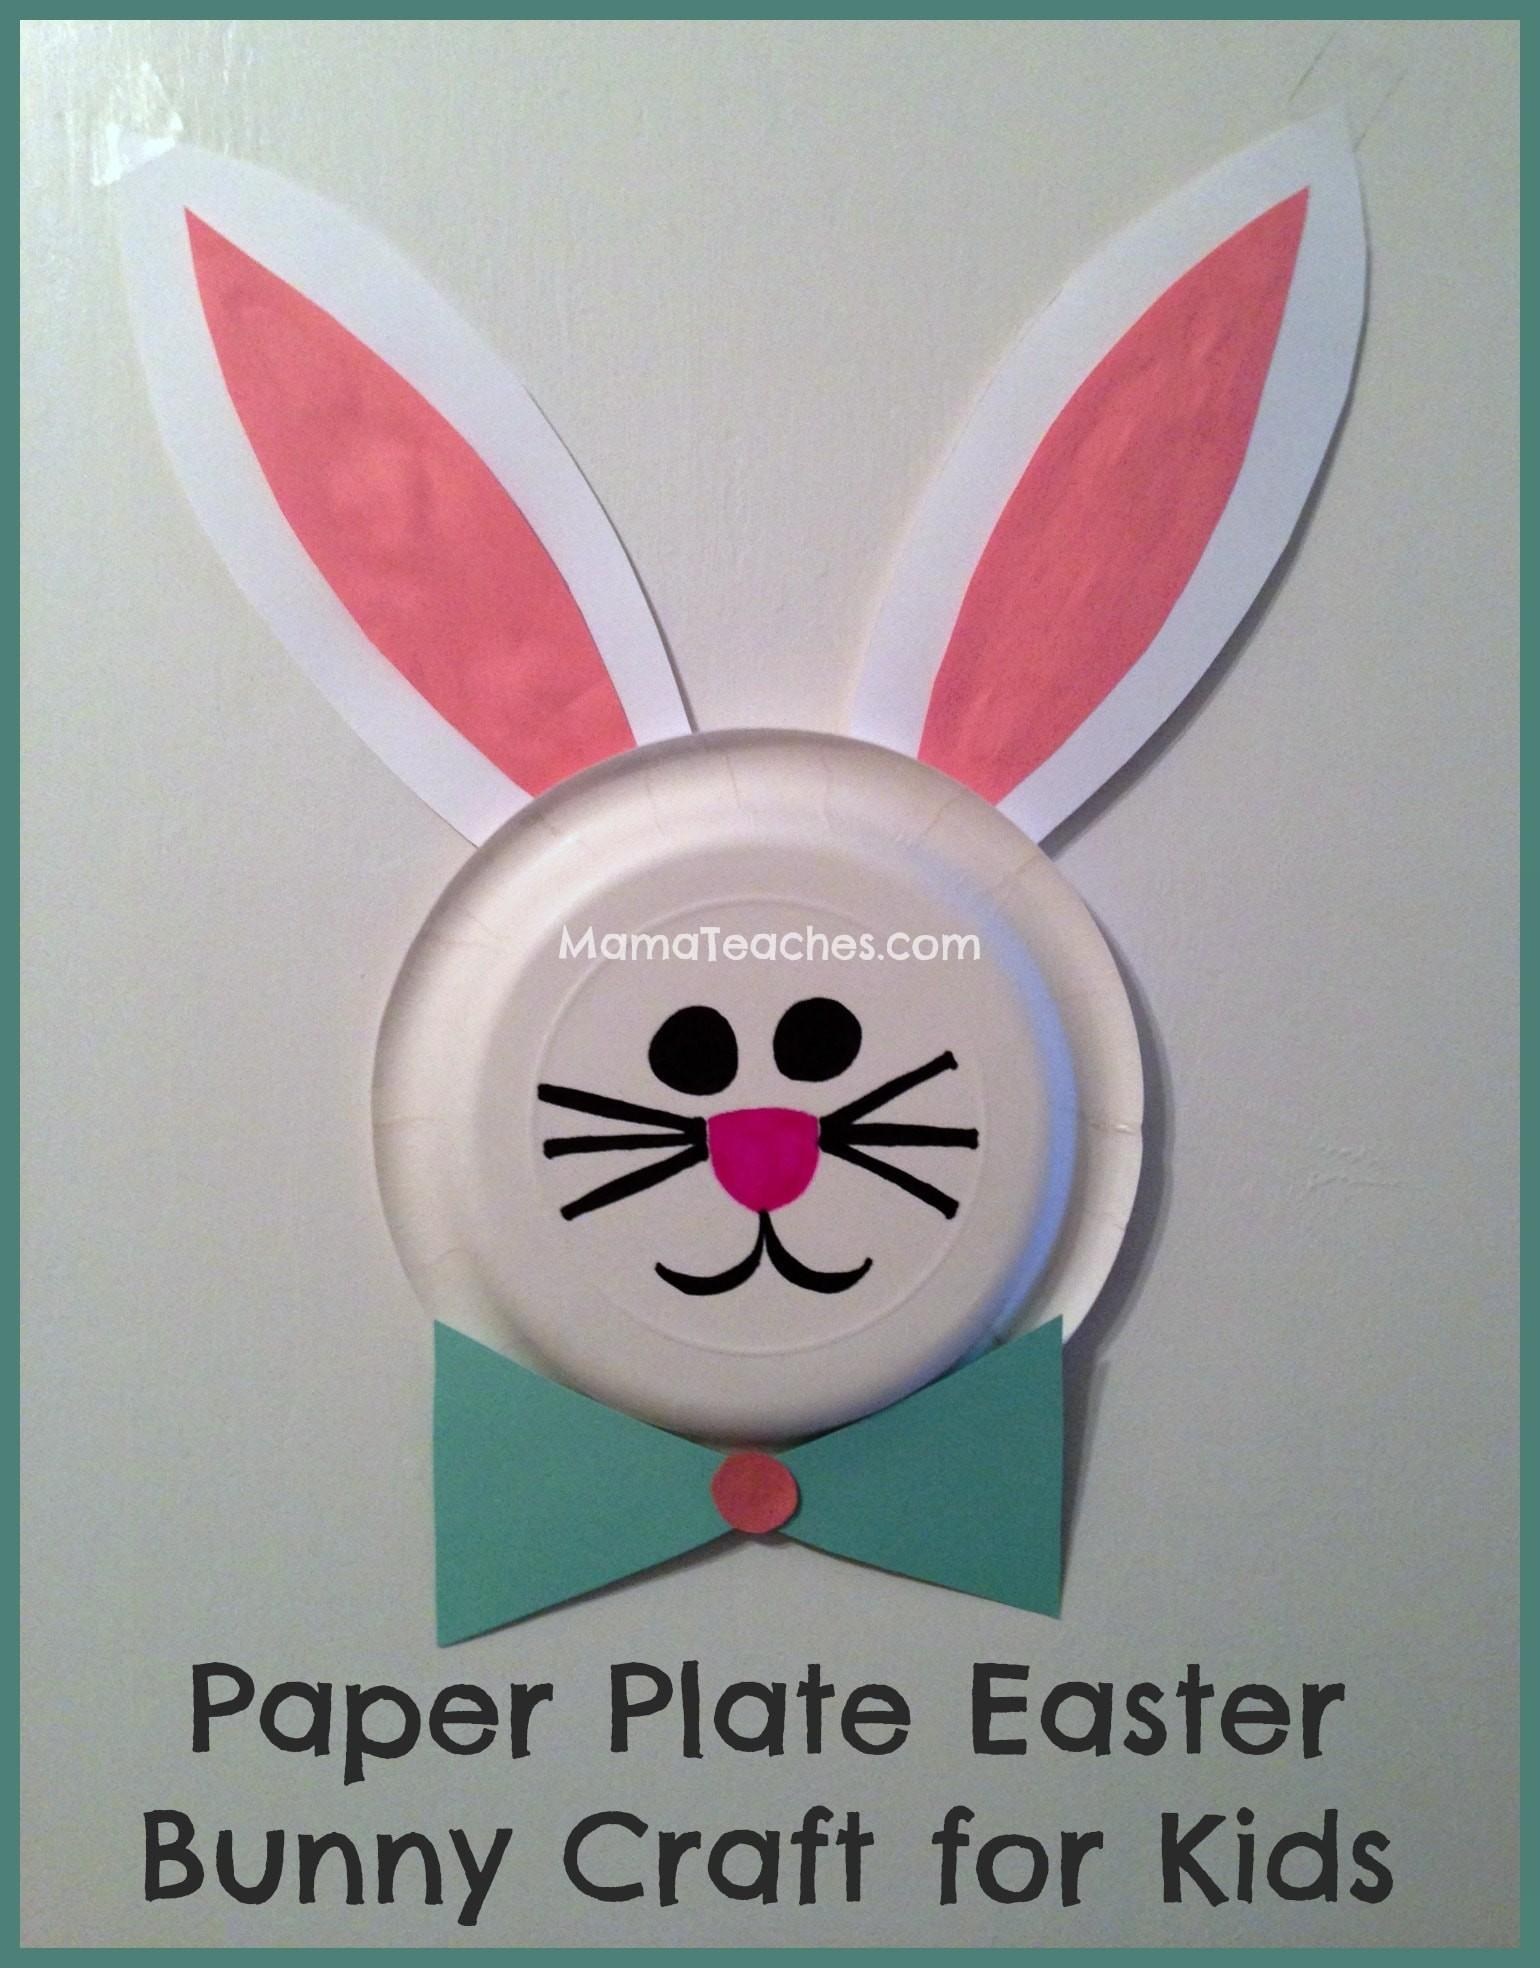 Paper Plate Easter Bunny Craft Kids Mama Teaches